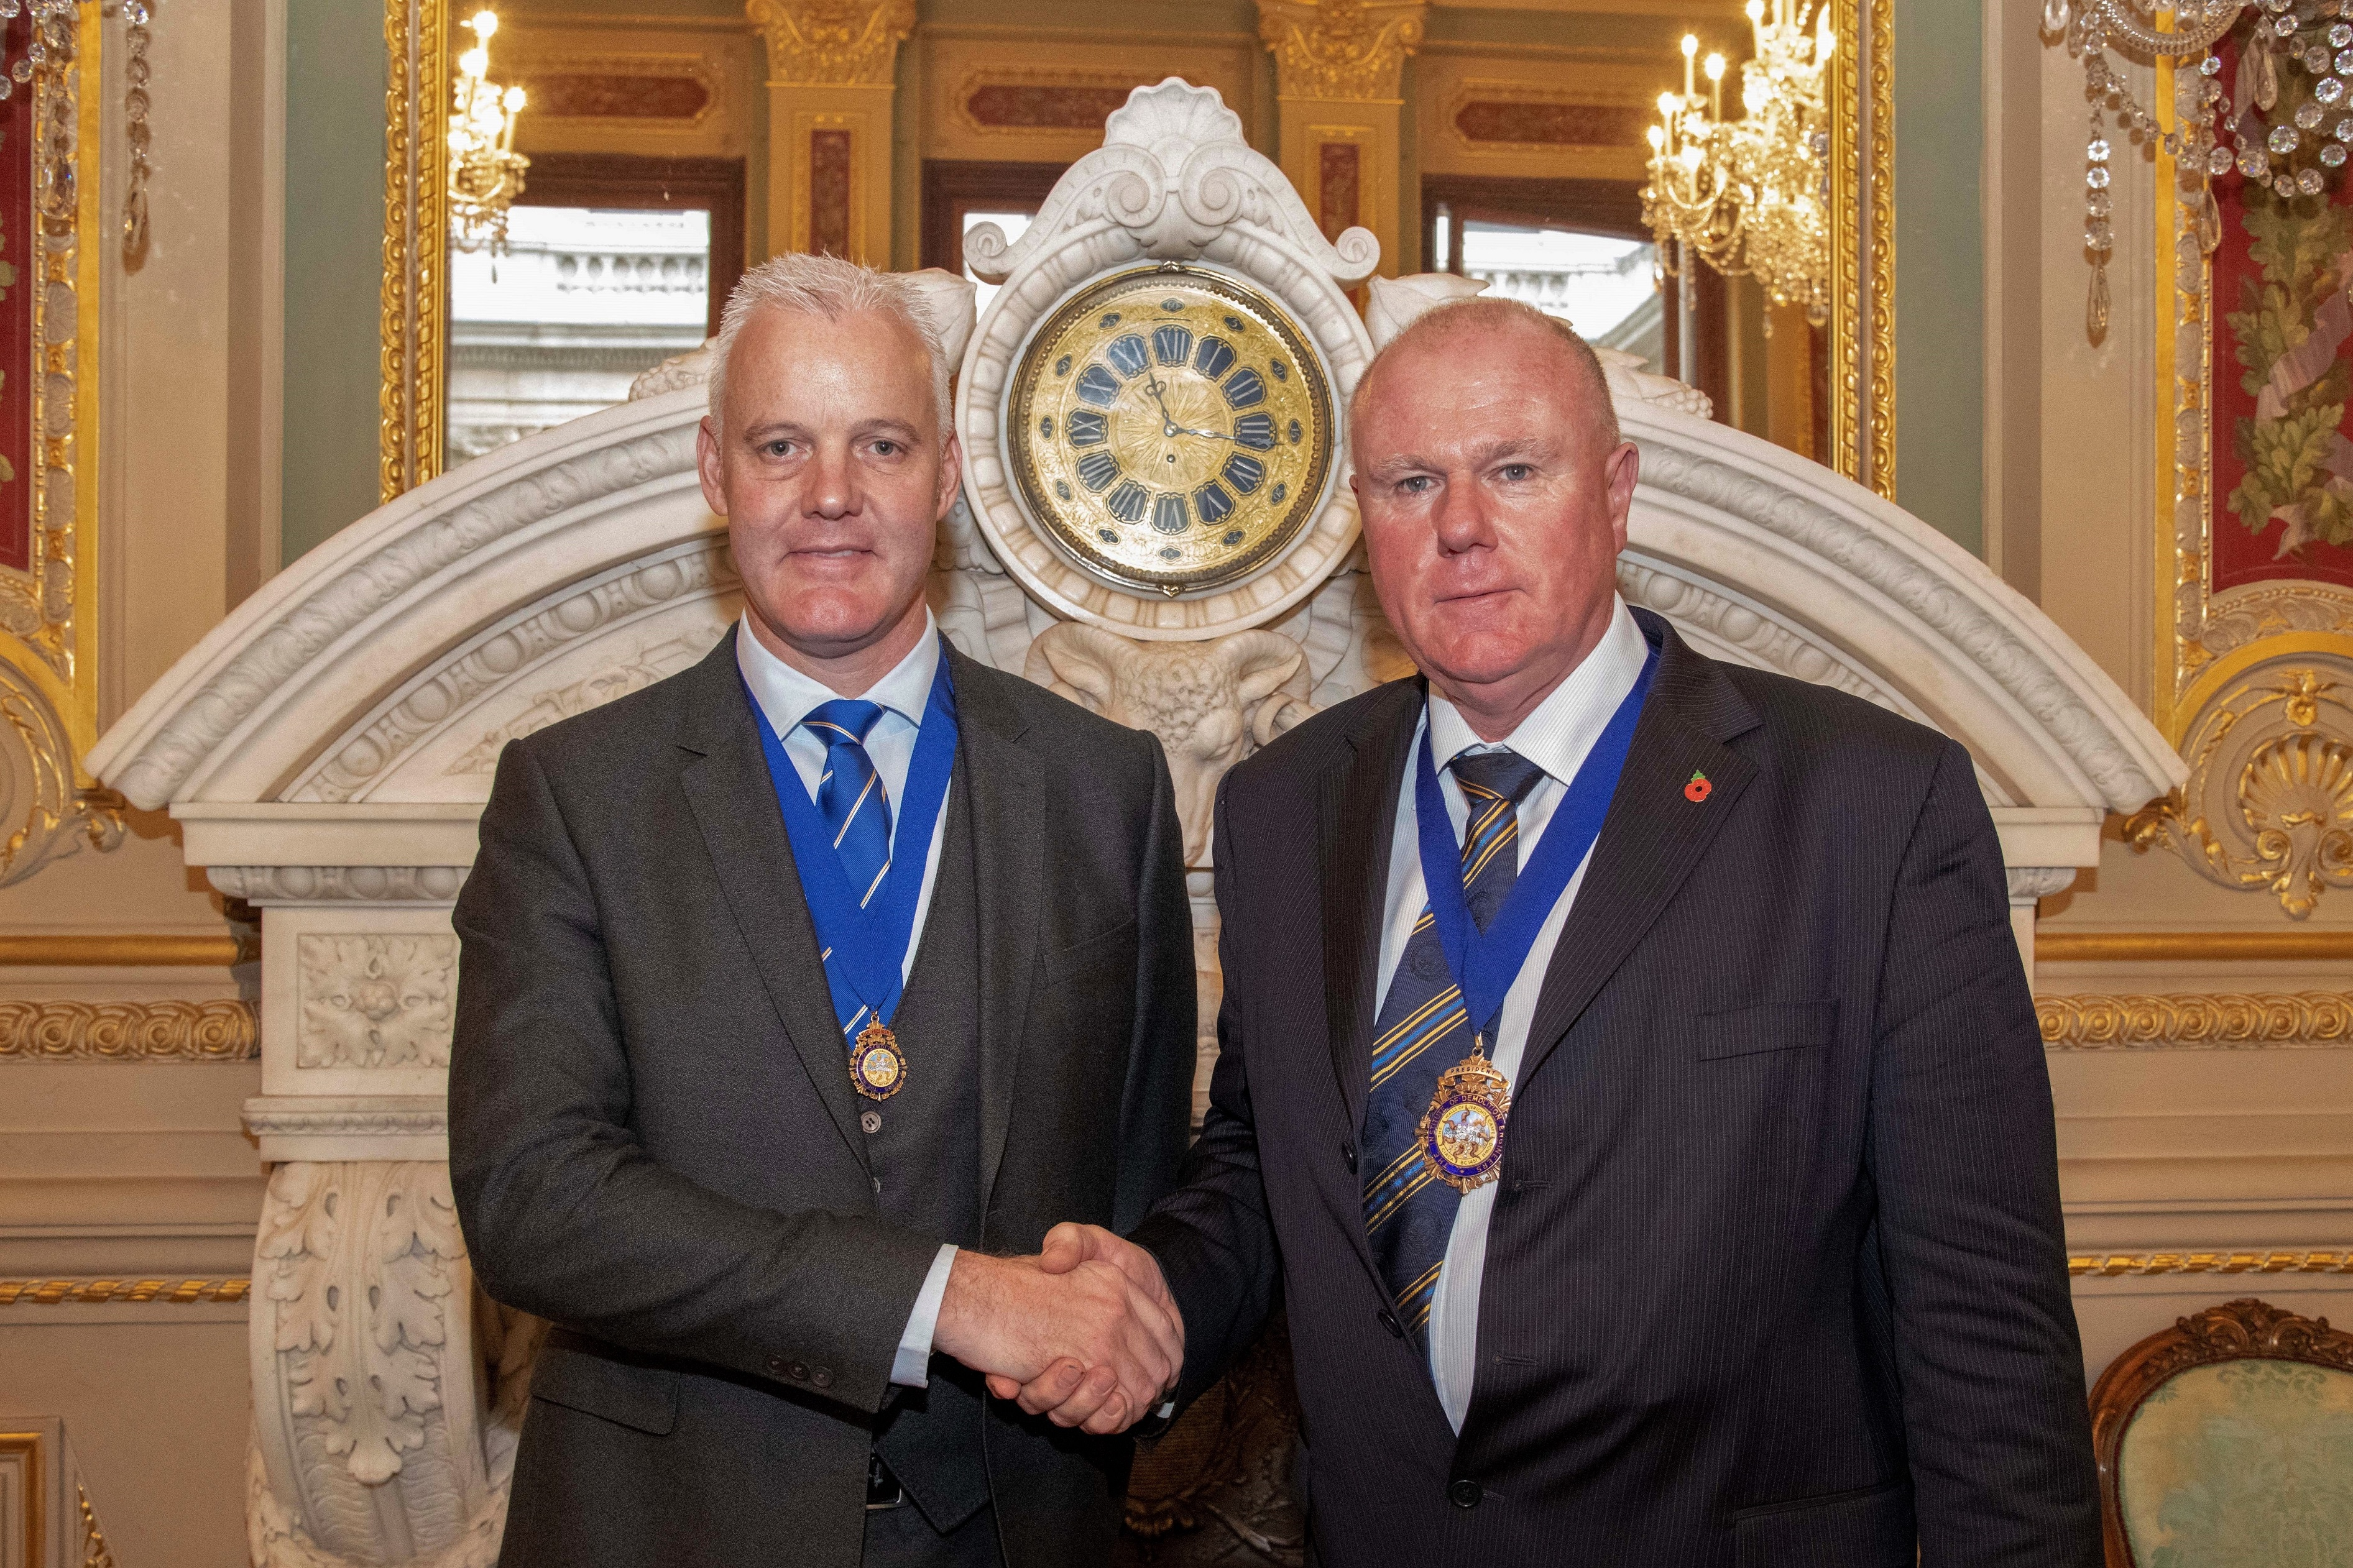 FEATHER IN THE CAP FOR AR DEMOLITION AS RICHARD DOLMAN IS ELECTED IDE VICE PRESIDENT